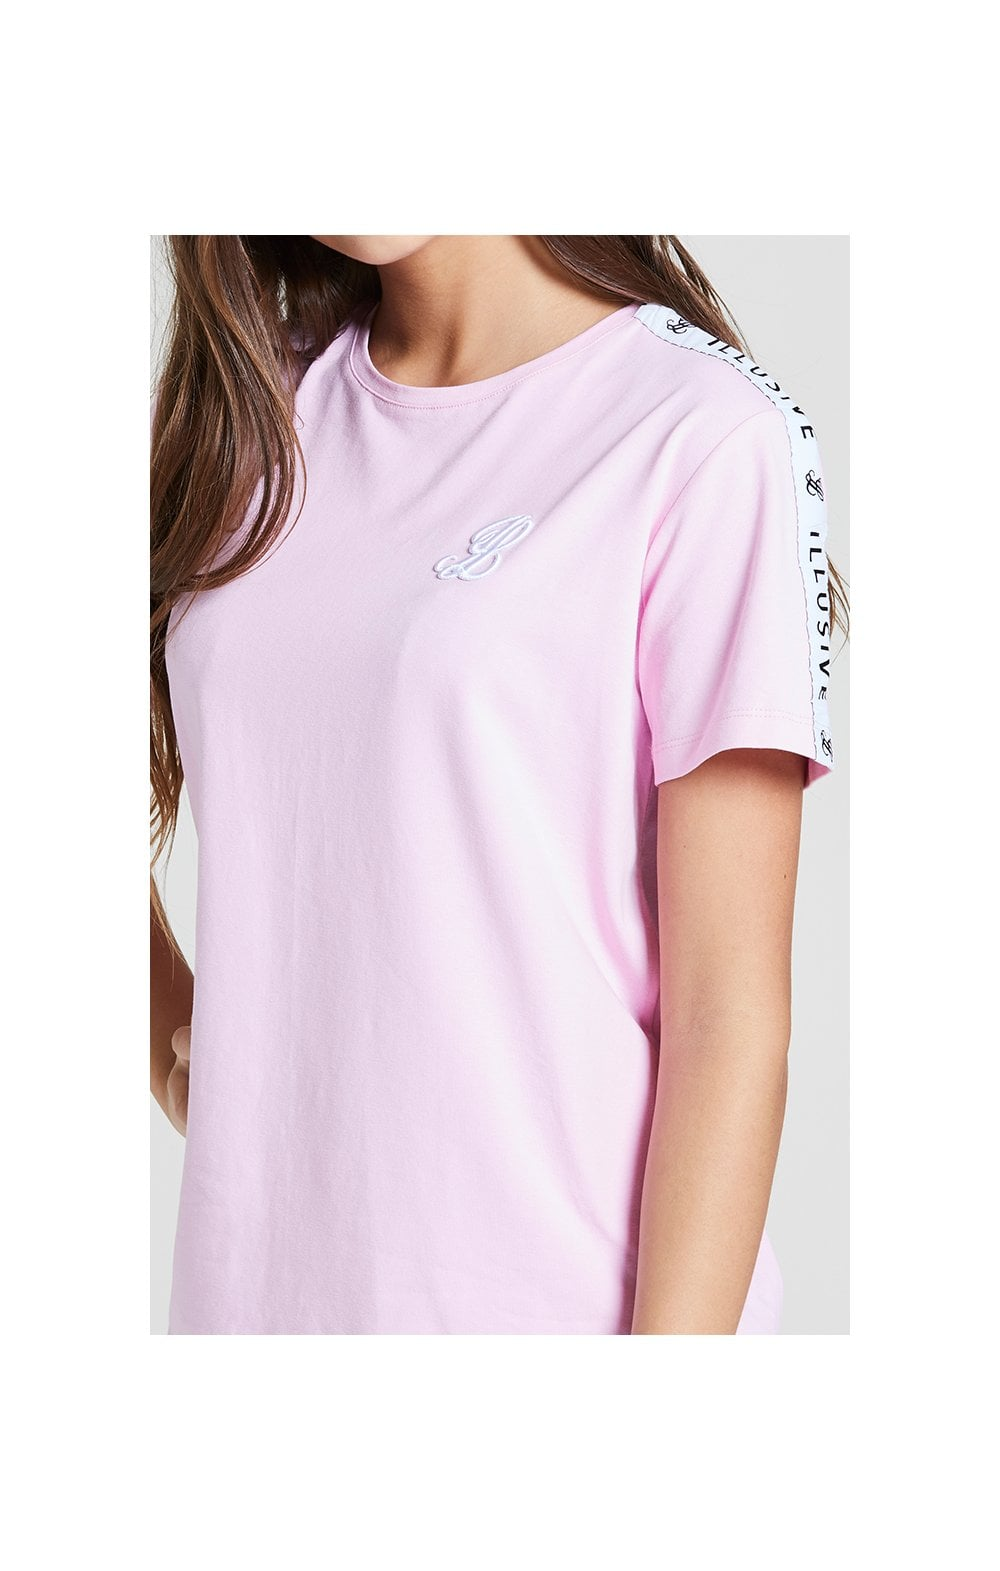 Illusive London BF Fit Taped Tee -  Pink